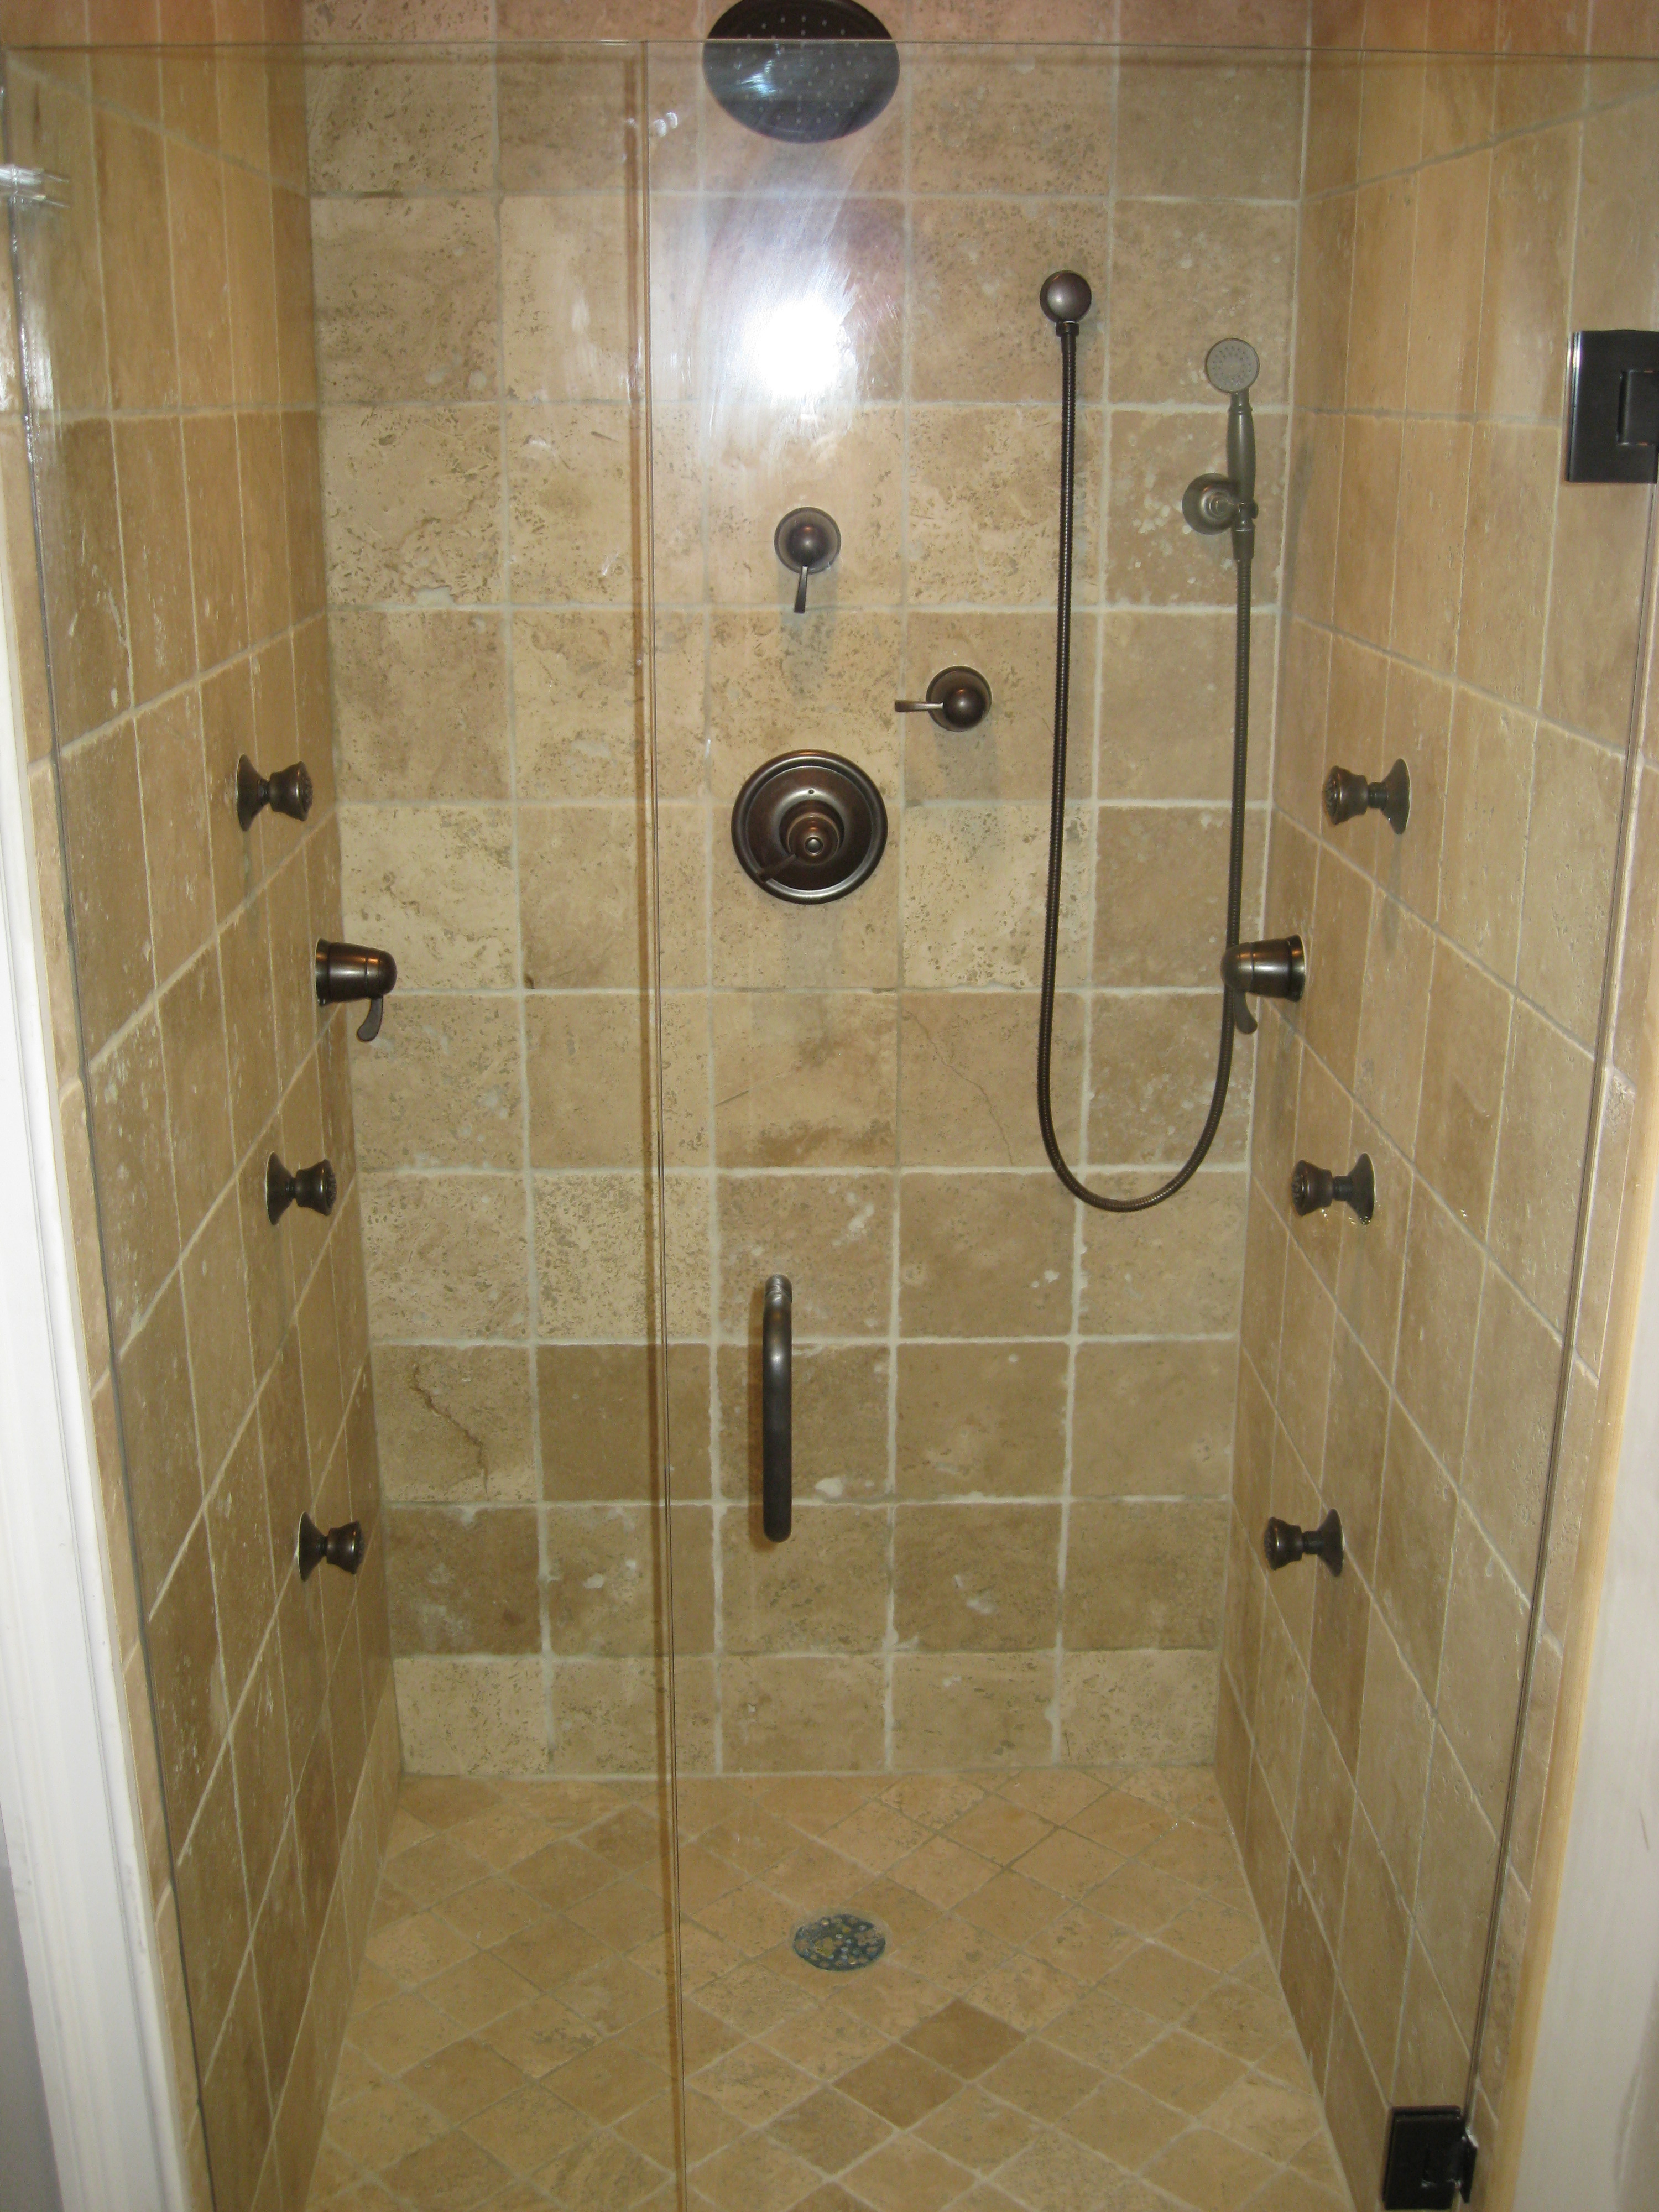 Excellent Shower Body Sprayers Pictures Inspiration - Bathtub for ...